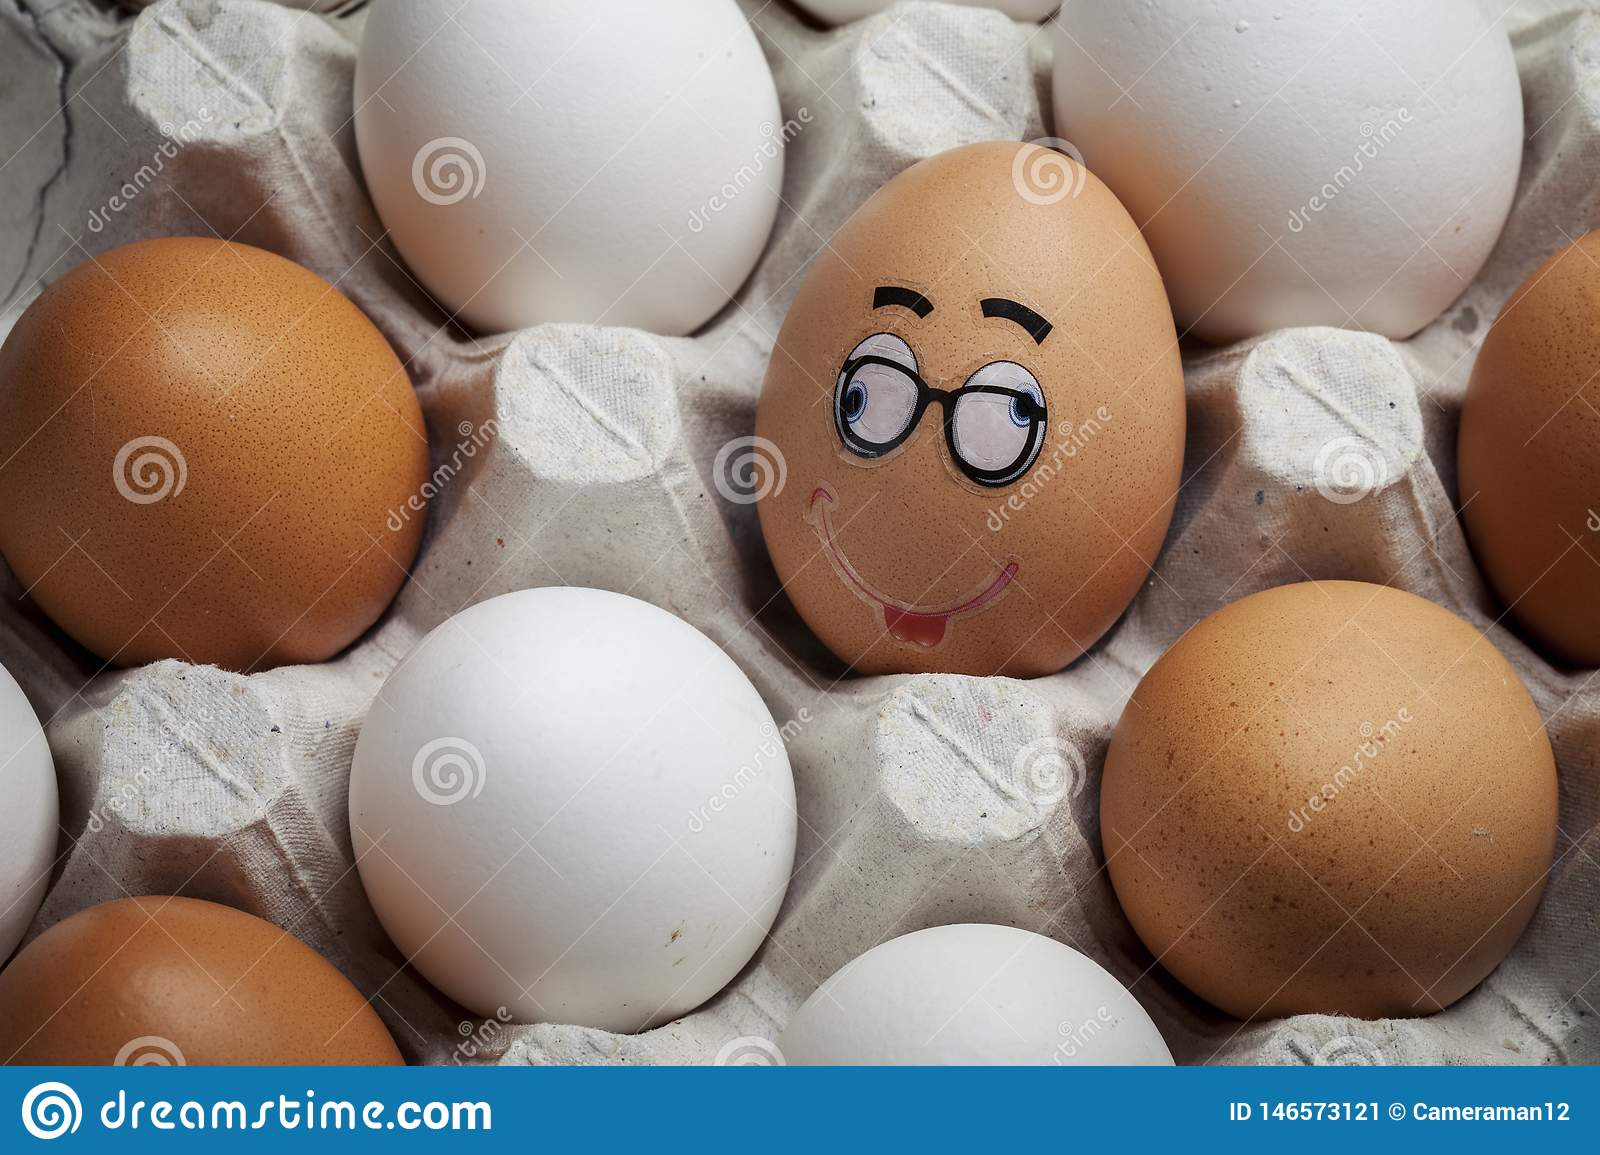 Eggs With Funny Faces Painted Stock Image Image Of Decorating Emotions 146573121,Christmas Decorations Diy Easy